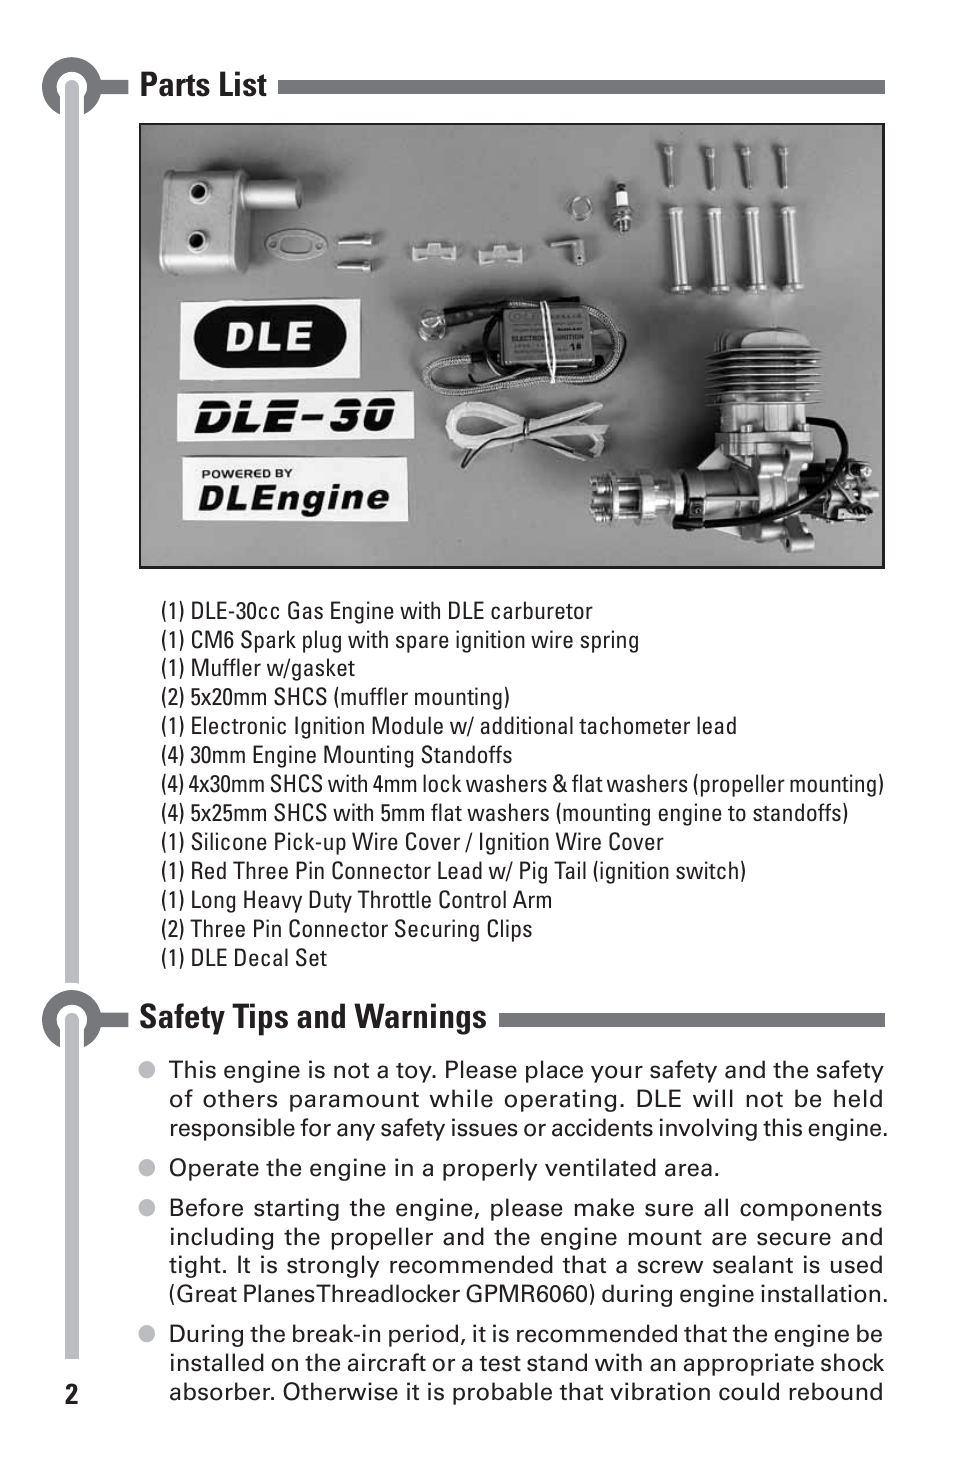 Dishwasher Components Caution Manual Guide